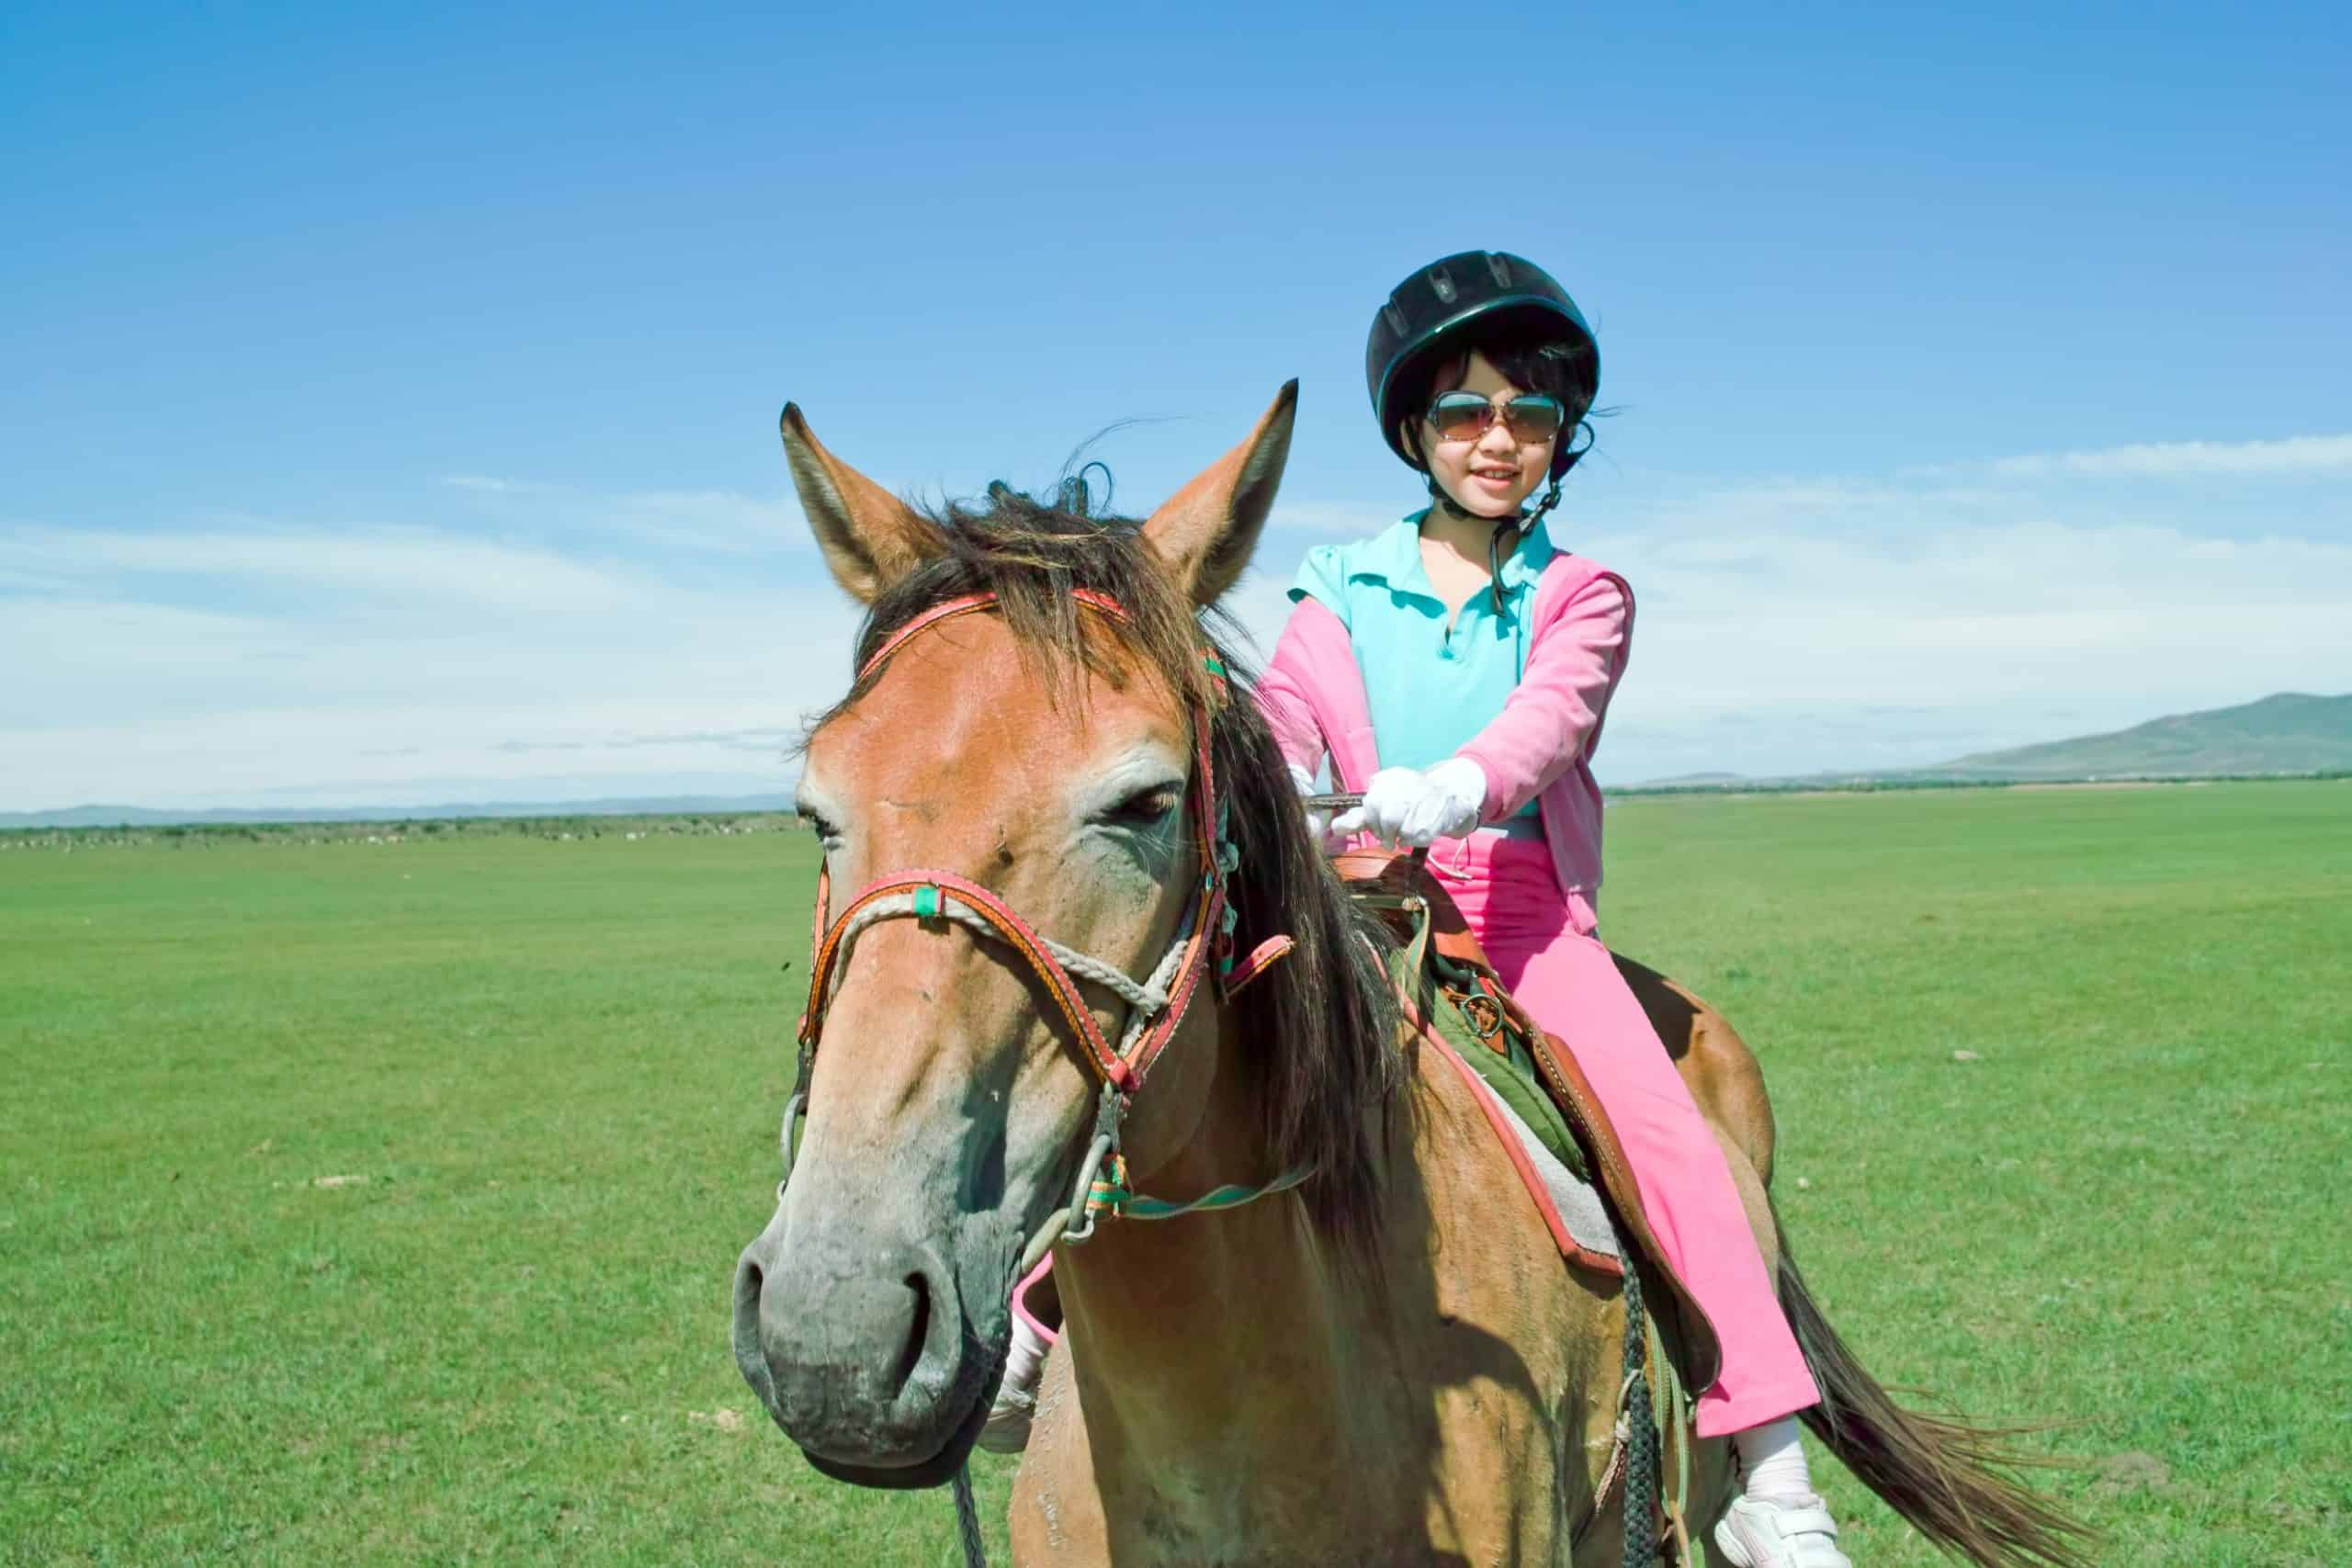 An Asian kid riding horse in the grassland